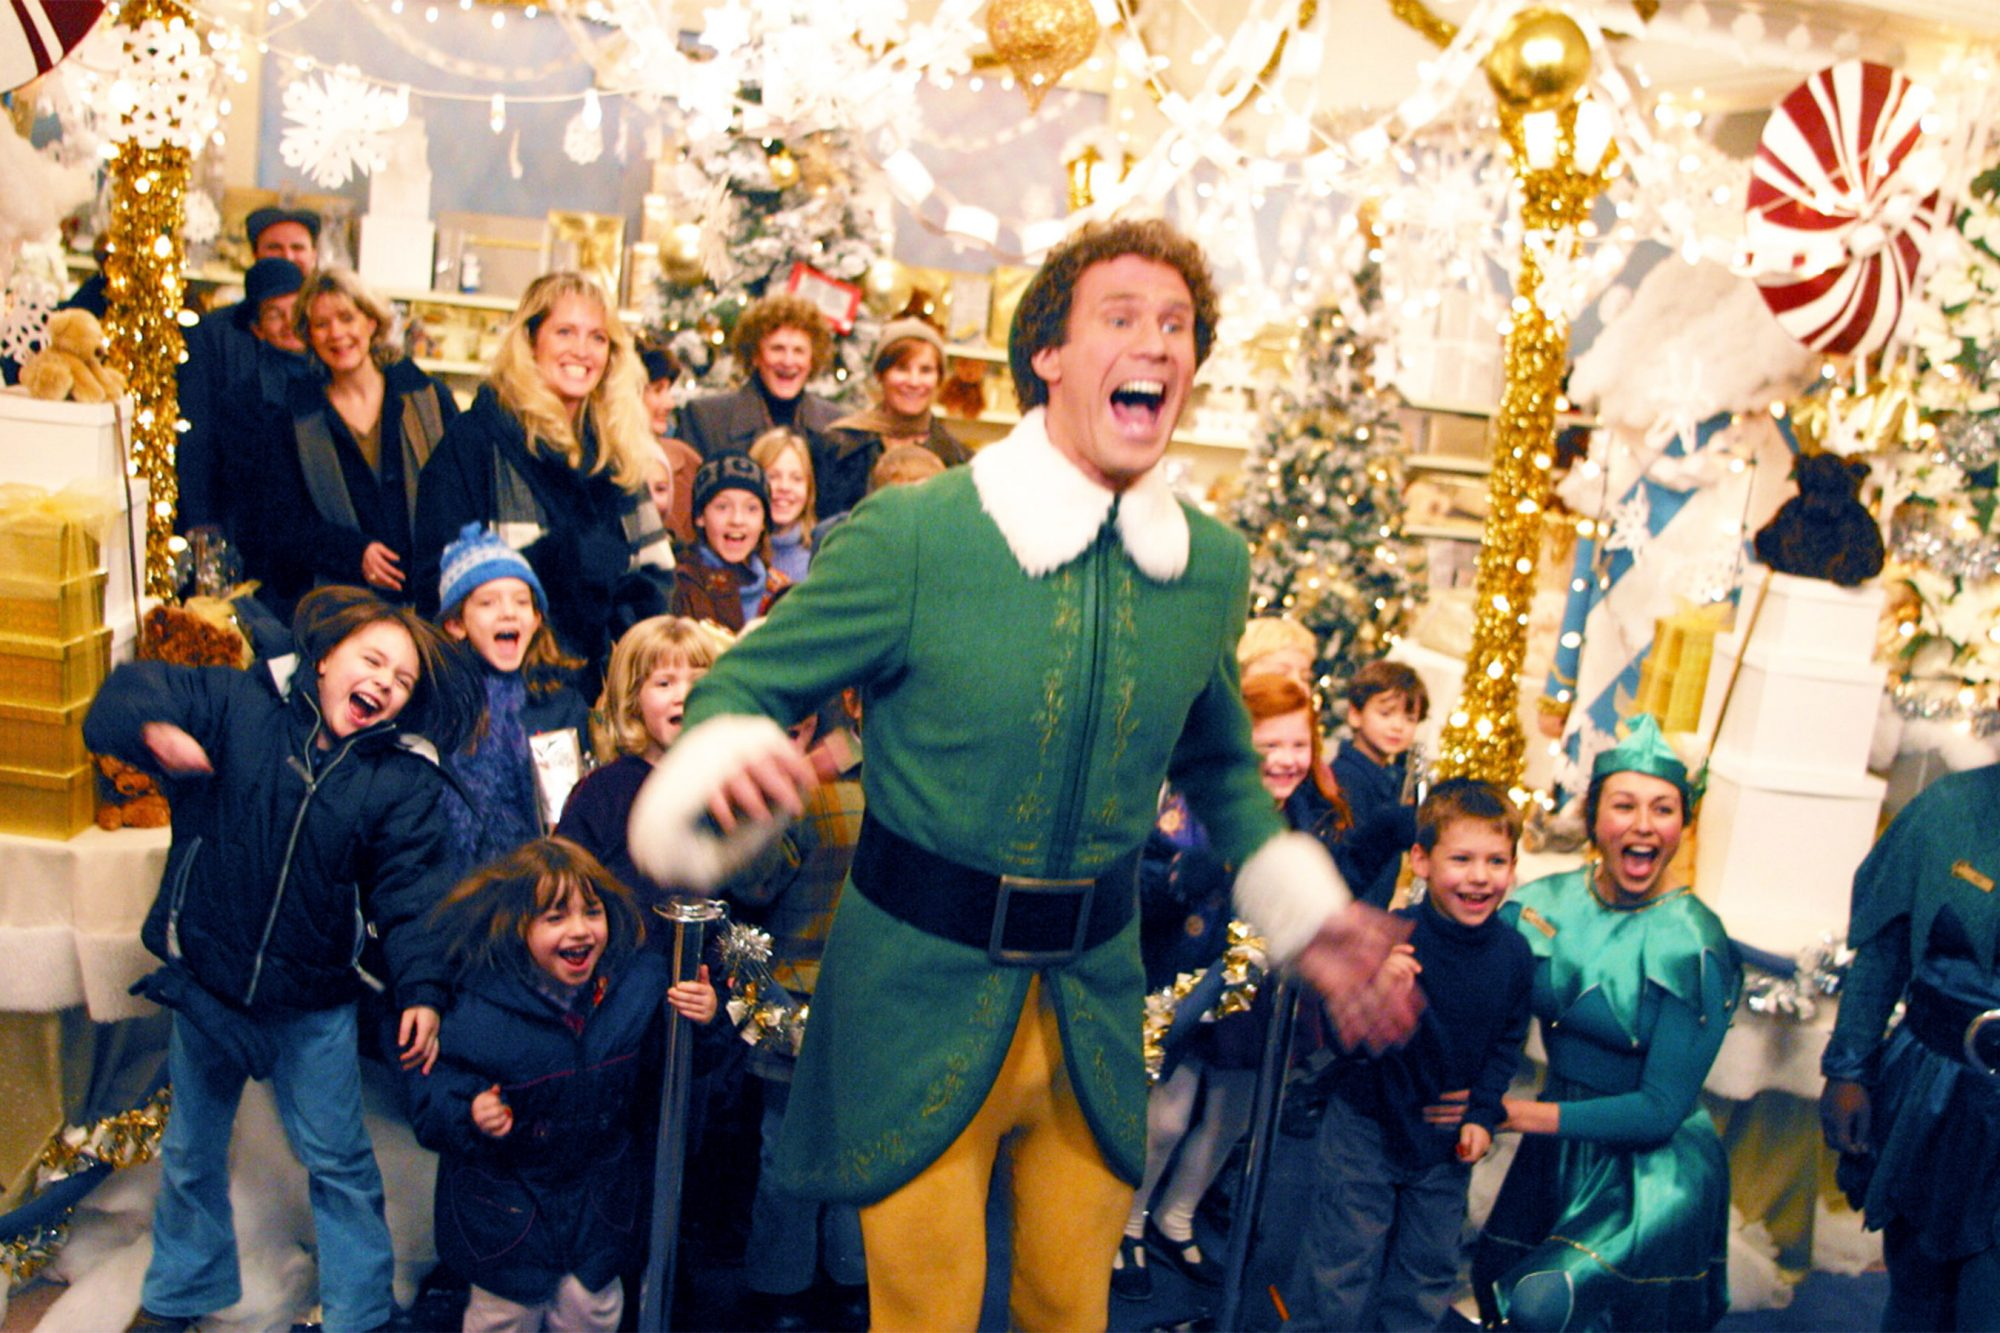 How 'Elf' built a winter wonderland out of paper and department store goods